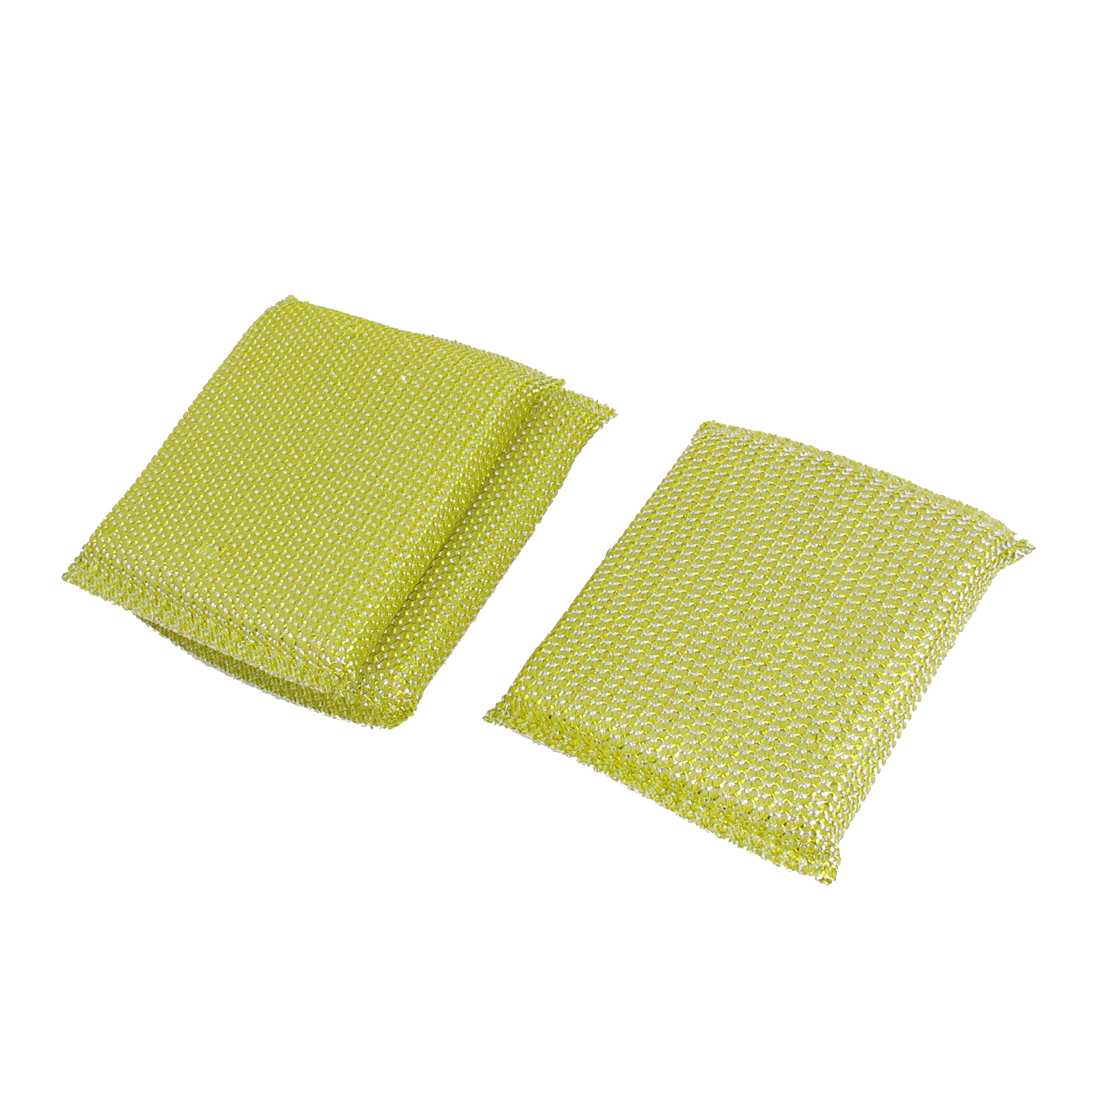 Kitchenware Dish Bowl Pot Cup Cleaner Scrubing Pads Cleaning Tool Yellow 3pcs